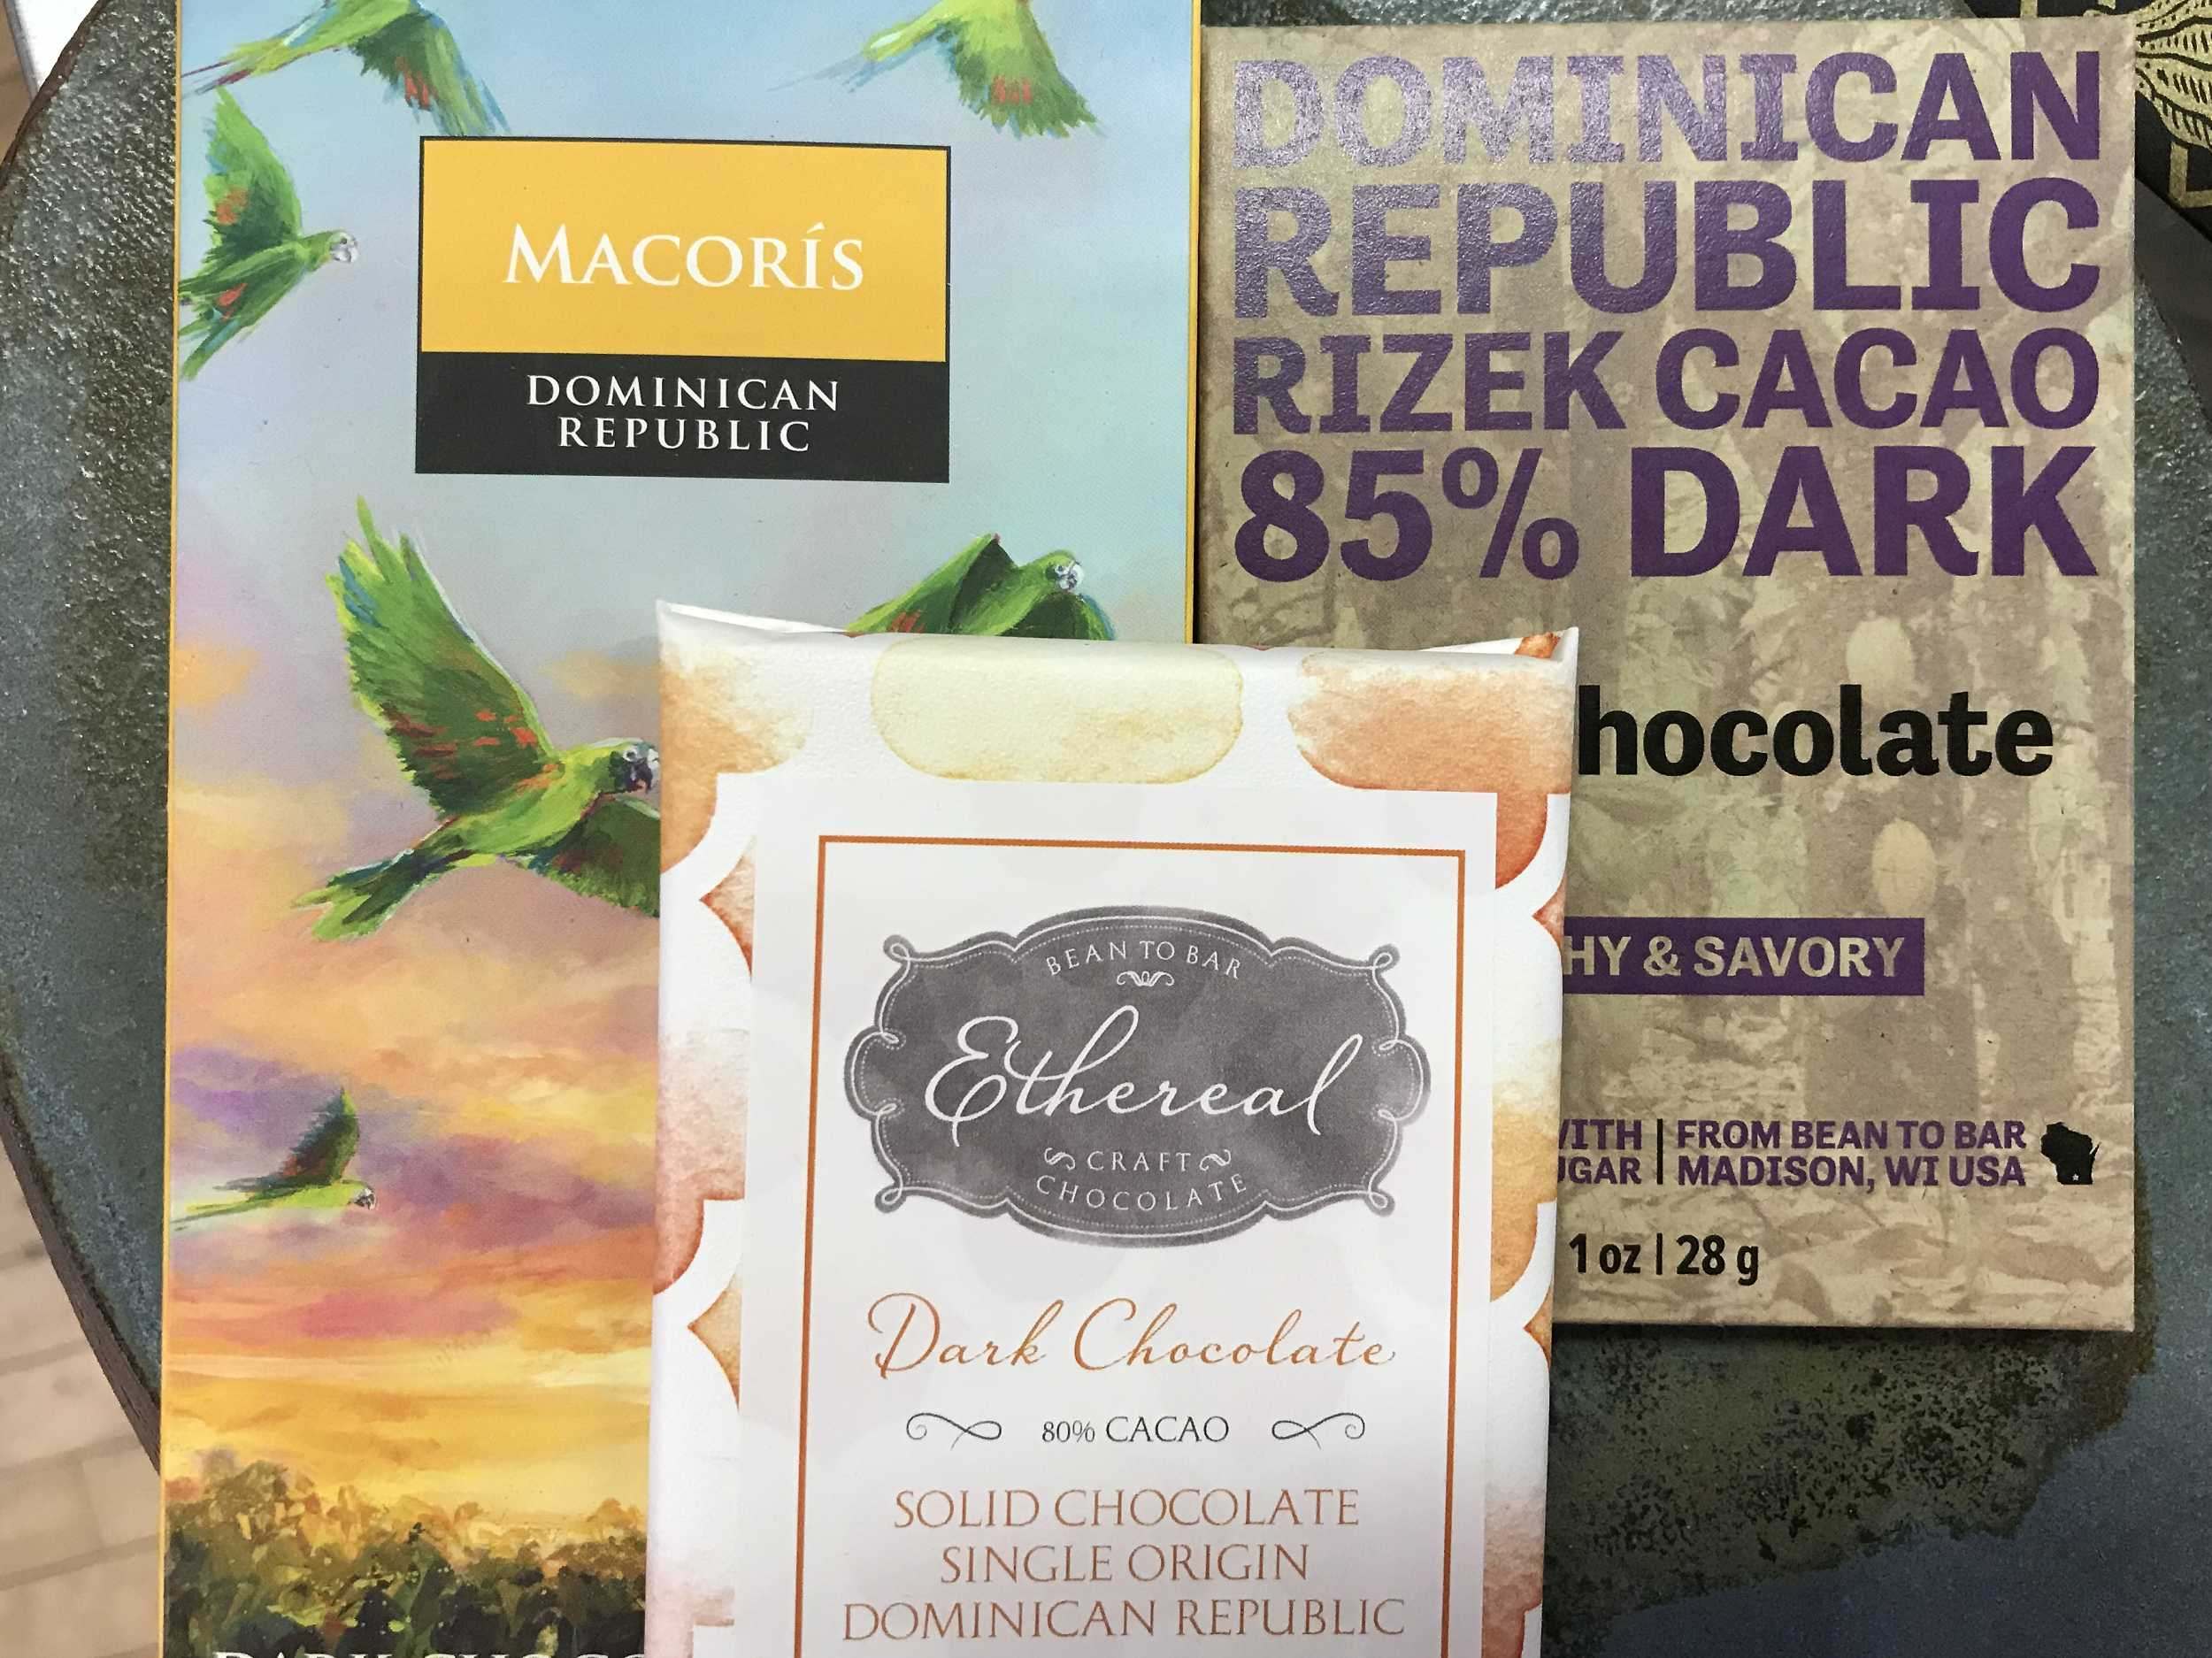 Dark Chocolate Bars produced in the Dominican Republic.